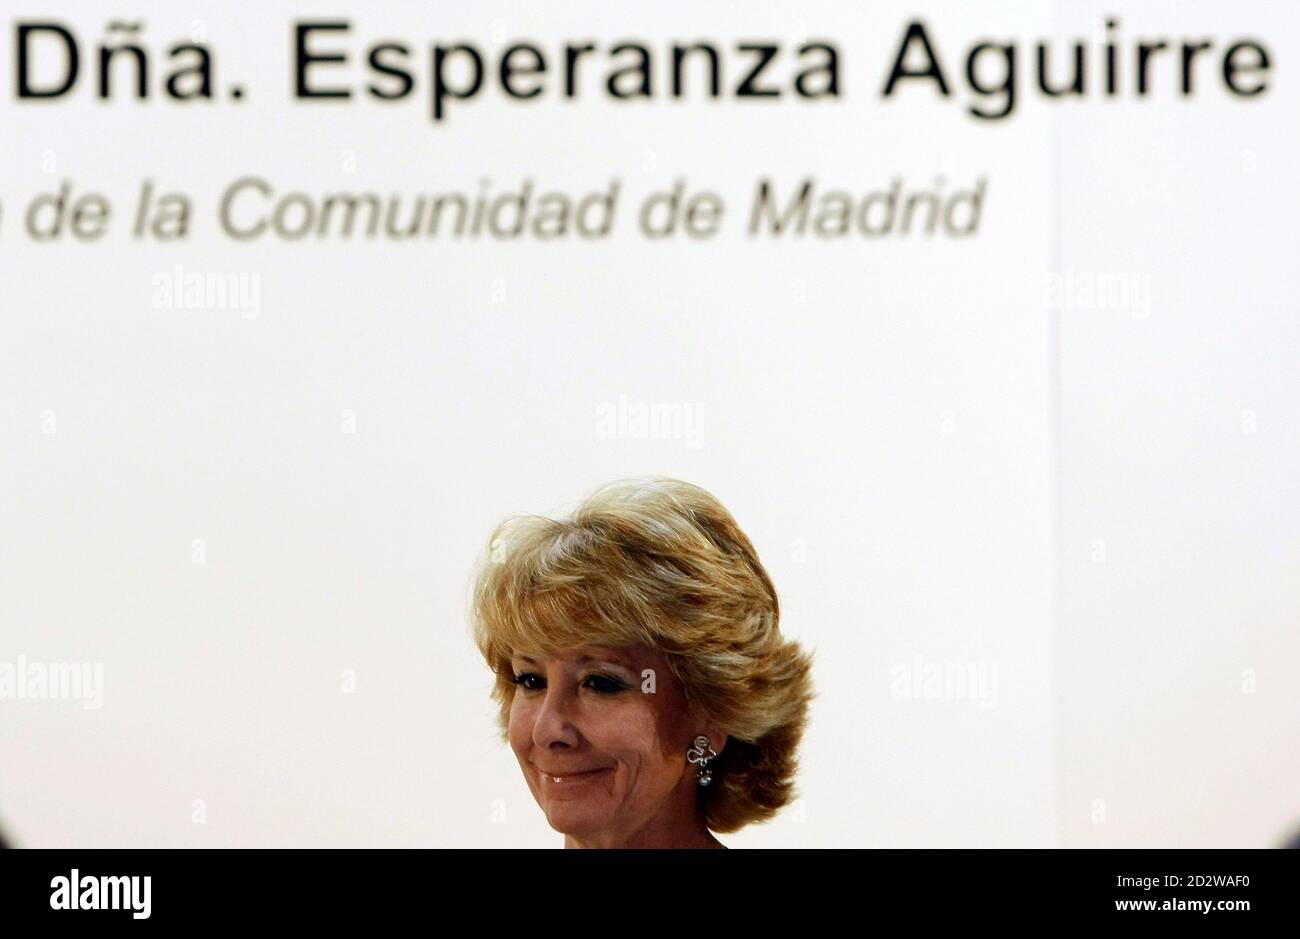 Esperanza Aguirre (L), the president of the Madrid Regional Government and one of the main Popular Party (PP) leaders, prepares to speak at a political luncheon in Madrid April 7, 2008. REUTERS/Sergio Perez (SPAIN) Banque D'Images